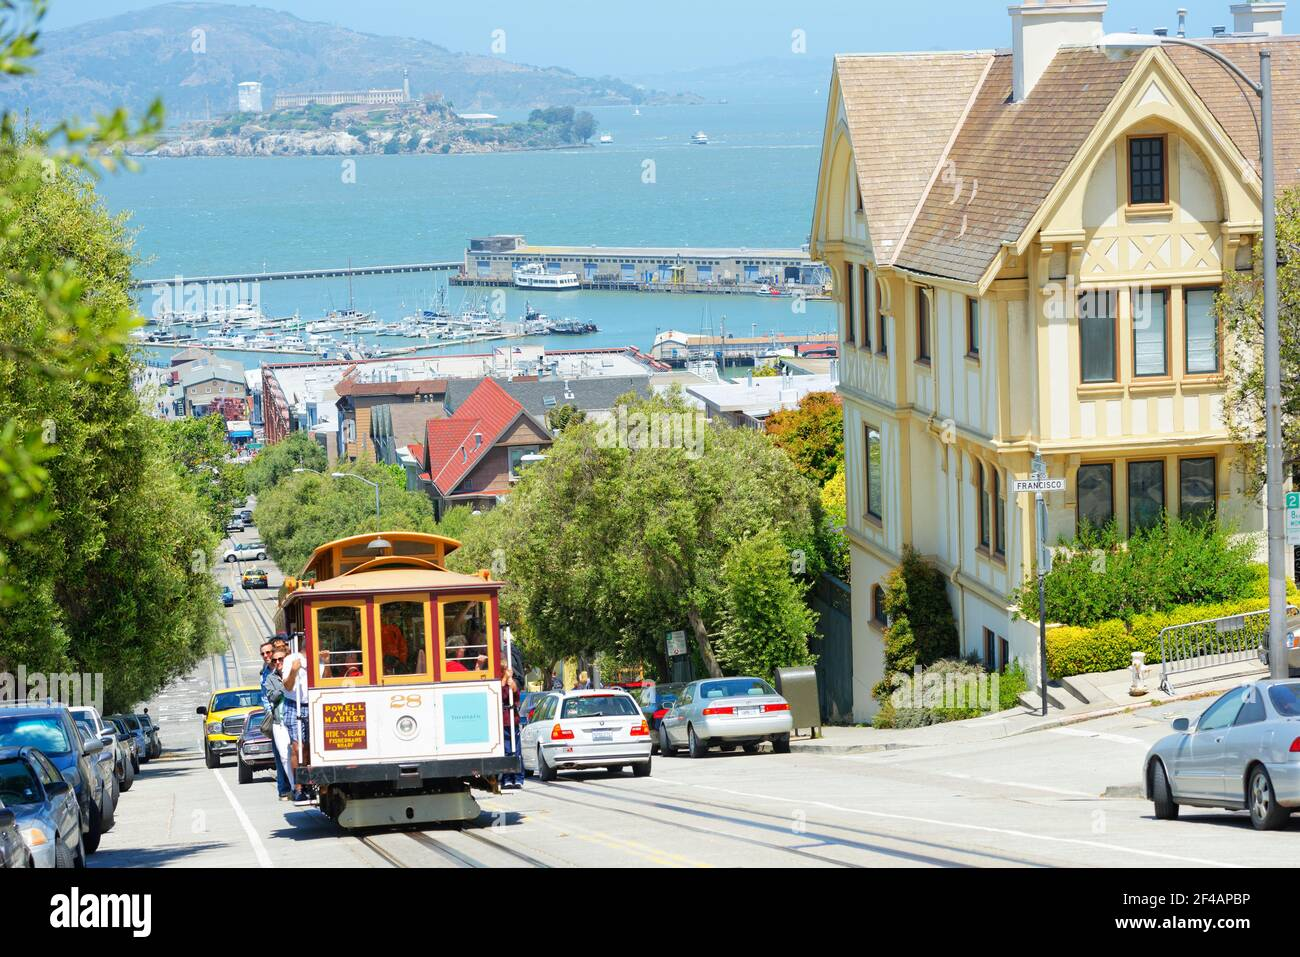 Powell-Hyde line cable car with Alcatraz Island in the background, San Francisco, California, USA Stock Photo